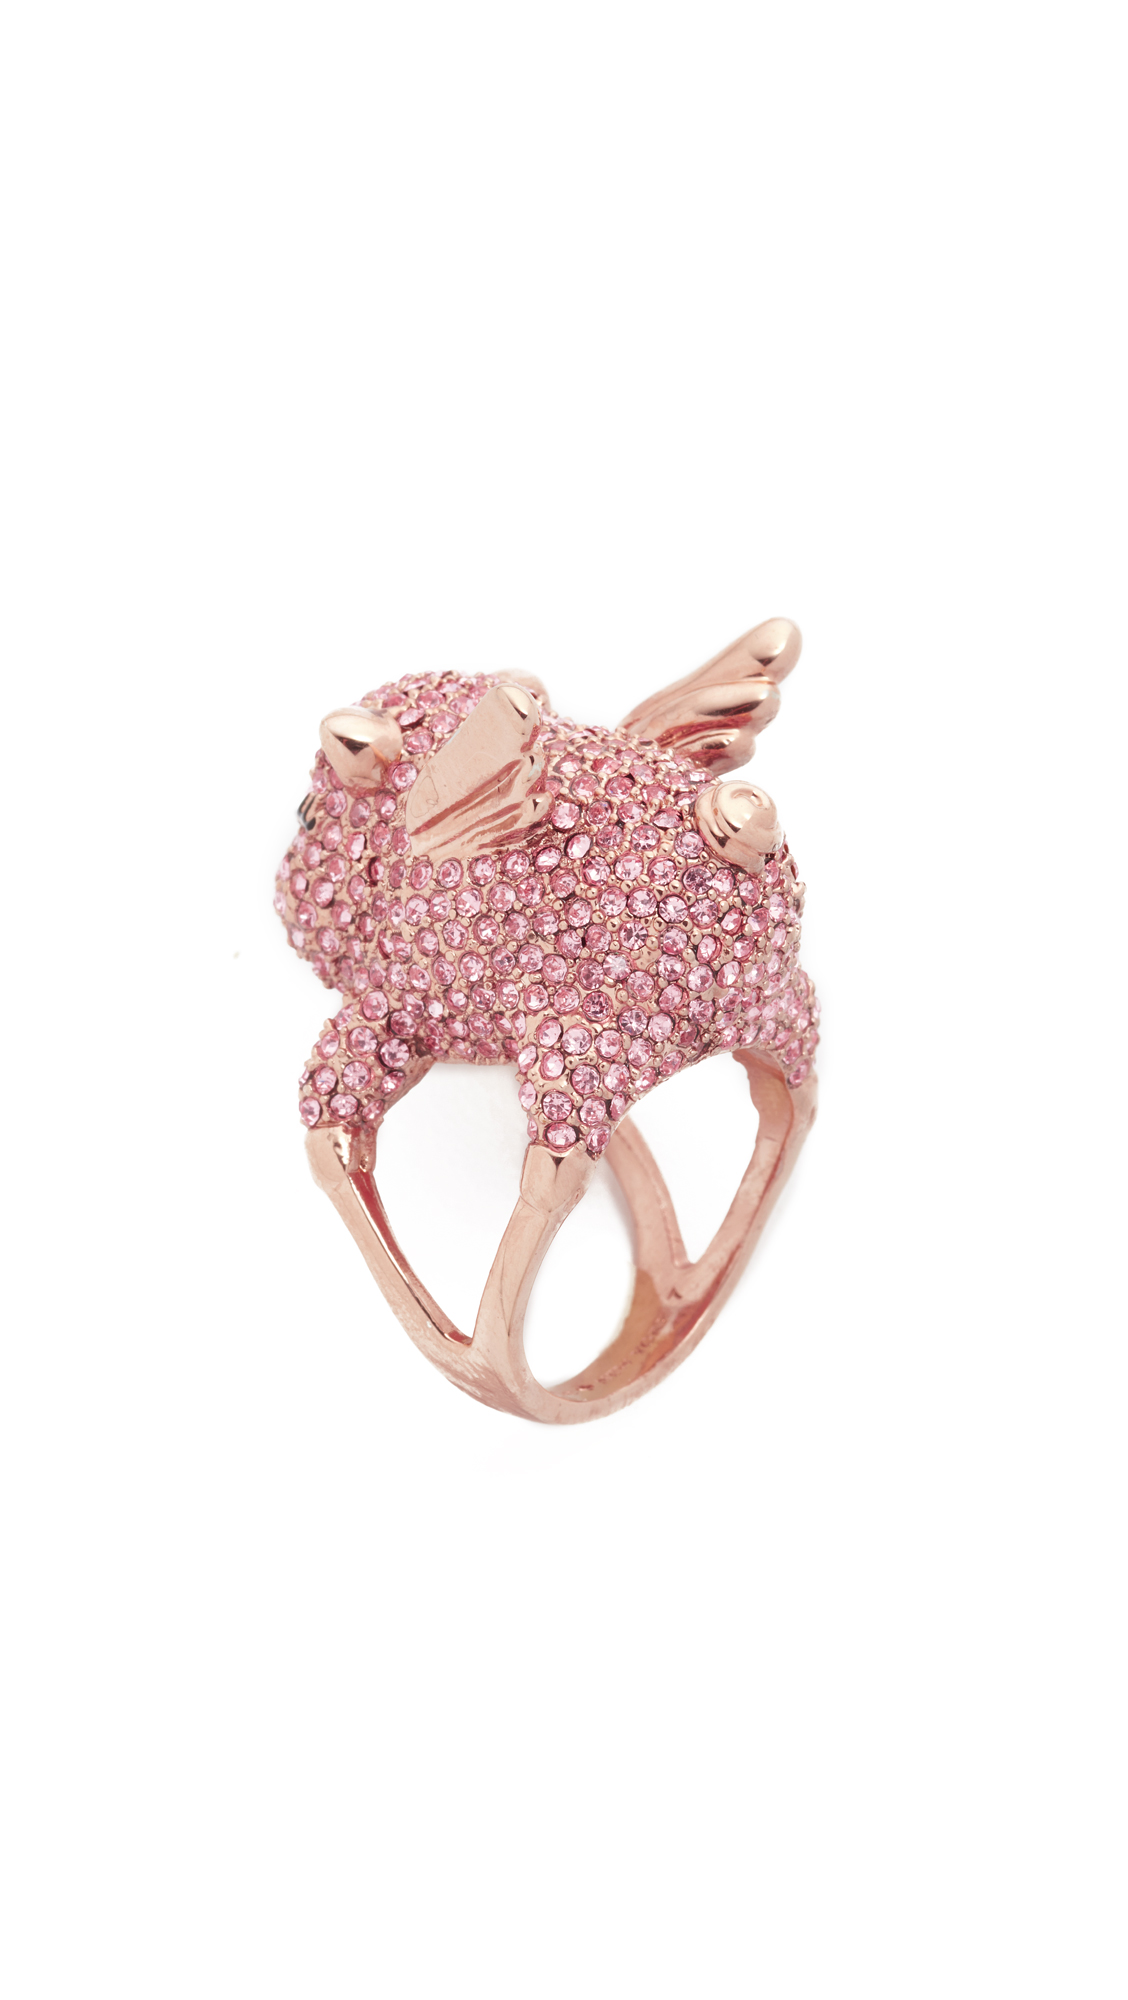 Kate Spade New York Imagination Pave Pig Ring | SHOPBOP